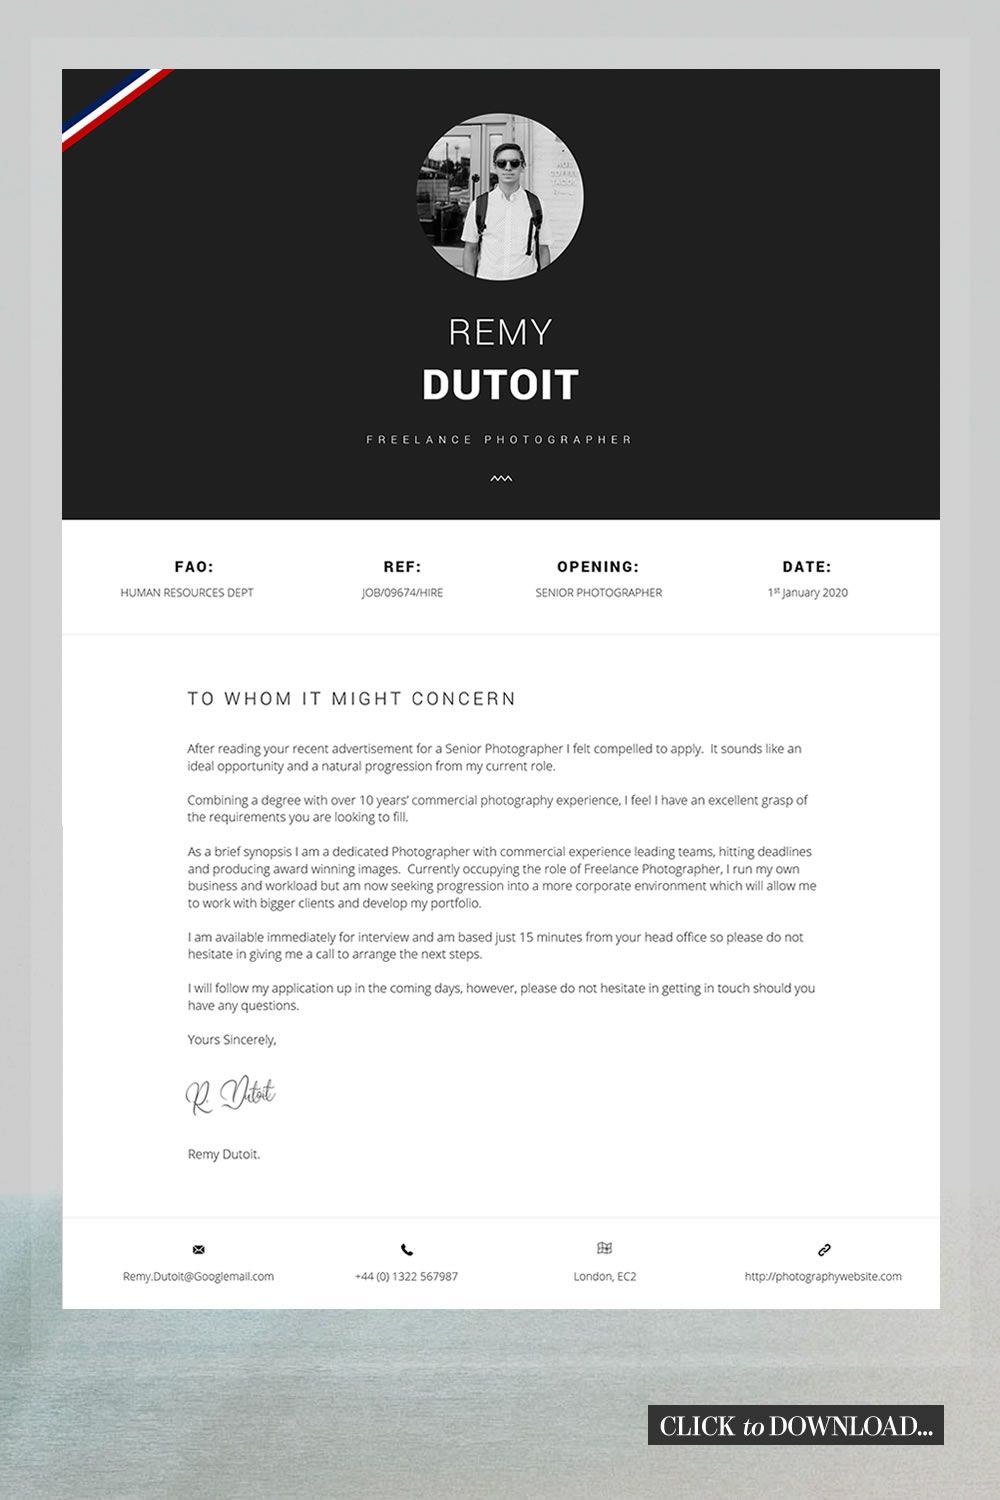 Photographer Resume Creative Resume And Cover Letter Template Word Resume Template Cover Letter Advice Printable For Word Hume Cover Letter Template Letter Template Word Cover Letter Design